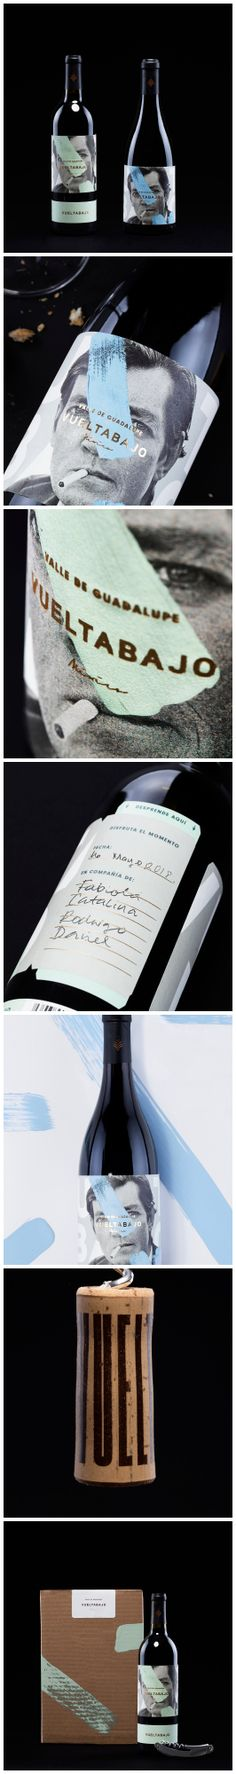 Detachable Label for Mexican Wine that Pays Tribute to a Writer Design Agency:Futura Brand / Project Name:Vueltabajo Location:Mexico Category:#Wine #Drinks  World Brand & Packaging Design Society